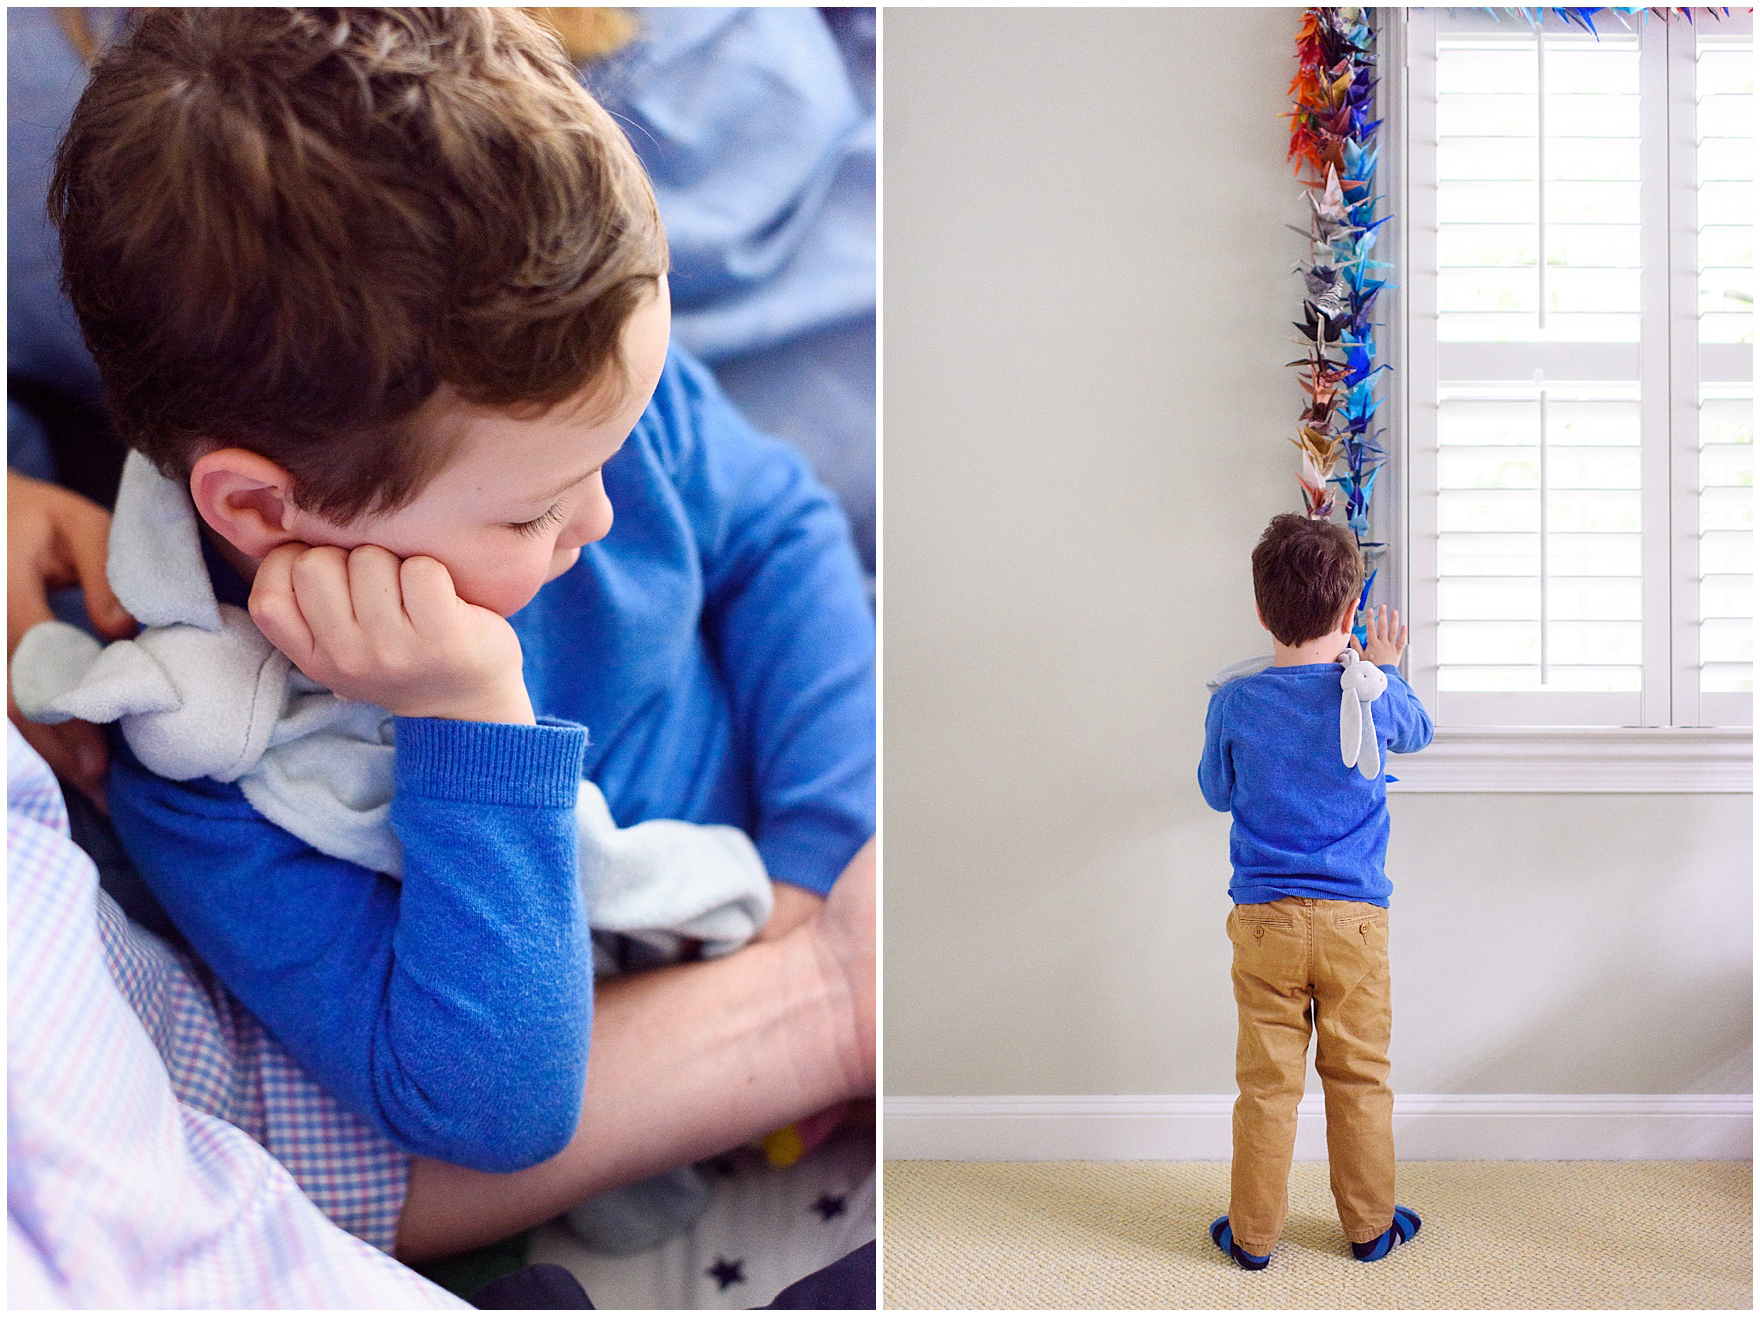 A young boy looks at a garland of a thousand paper cranes during an at home family session.